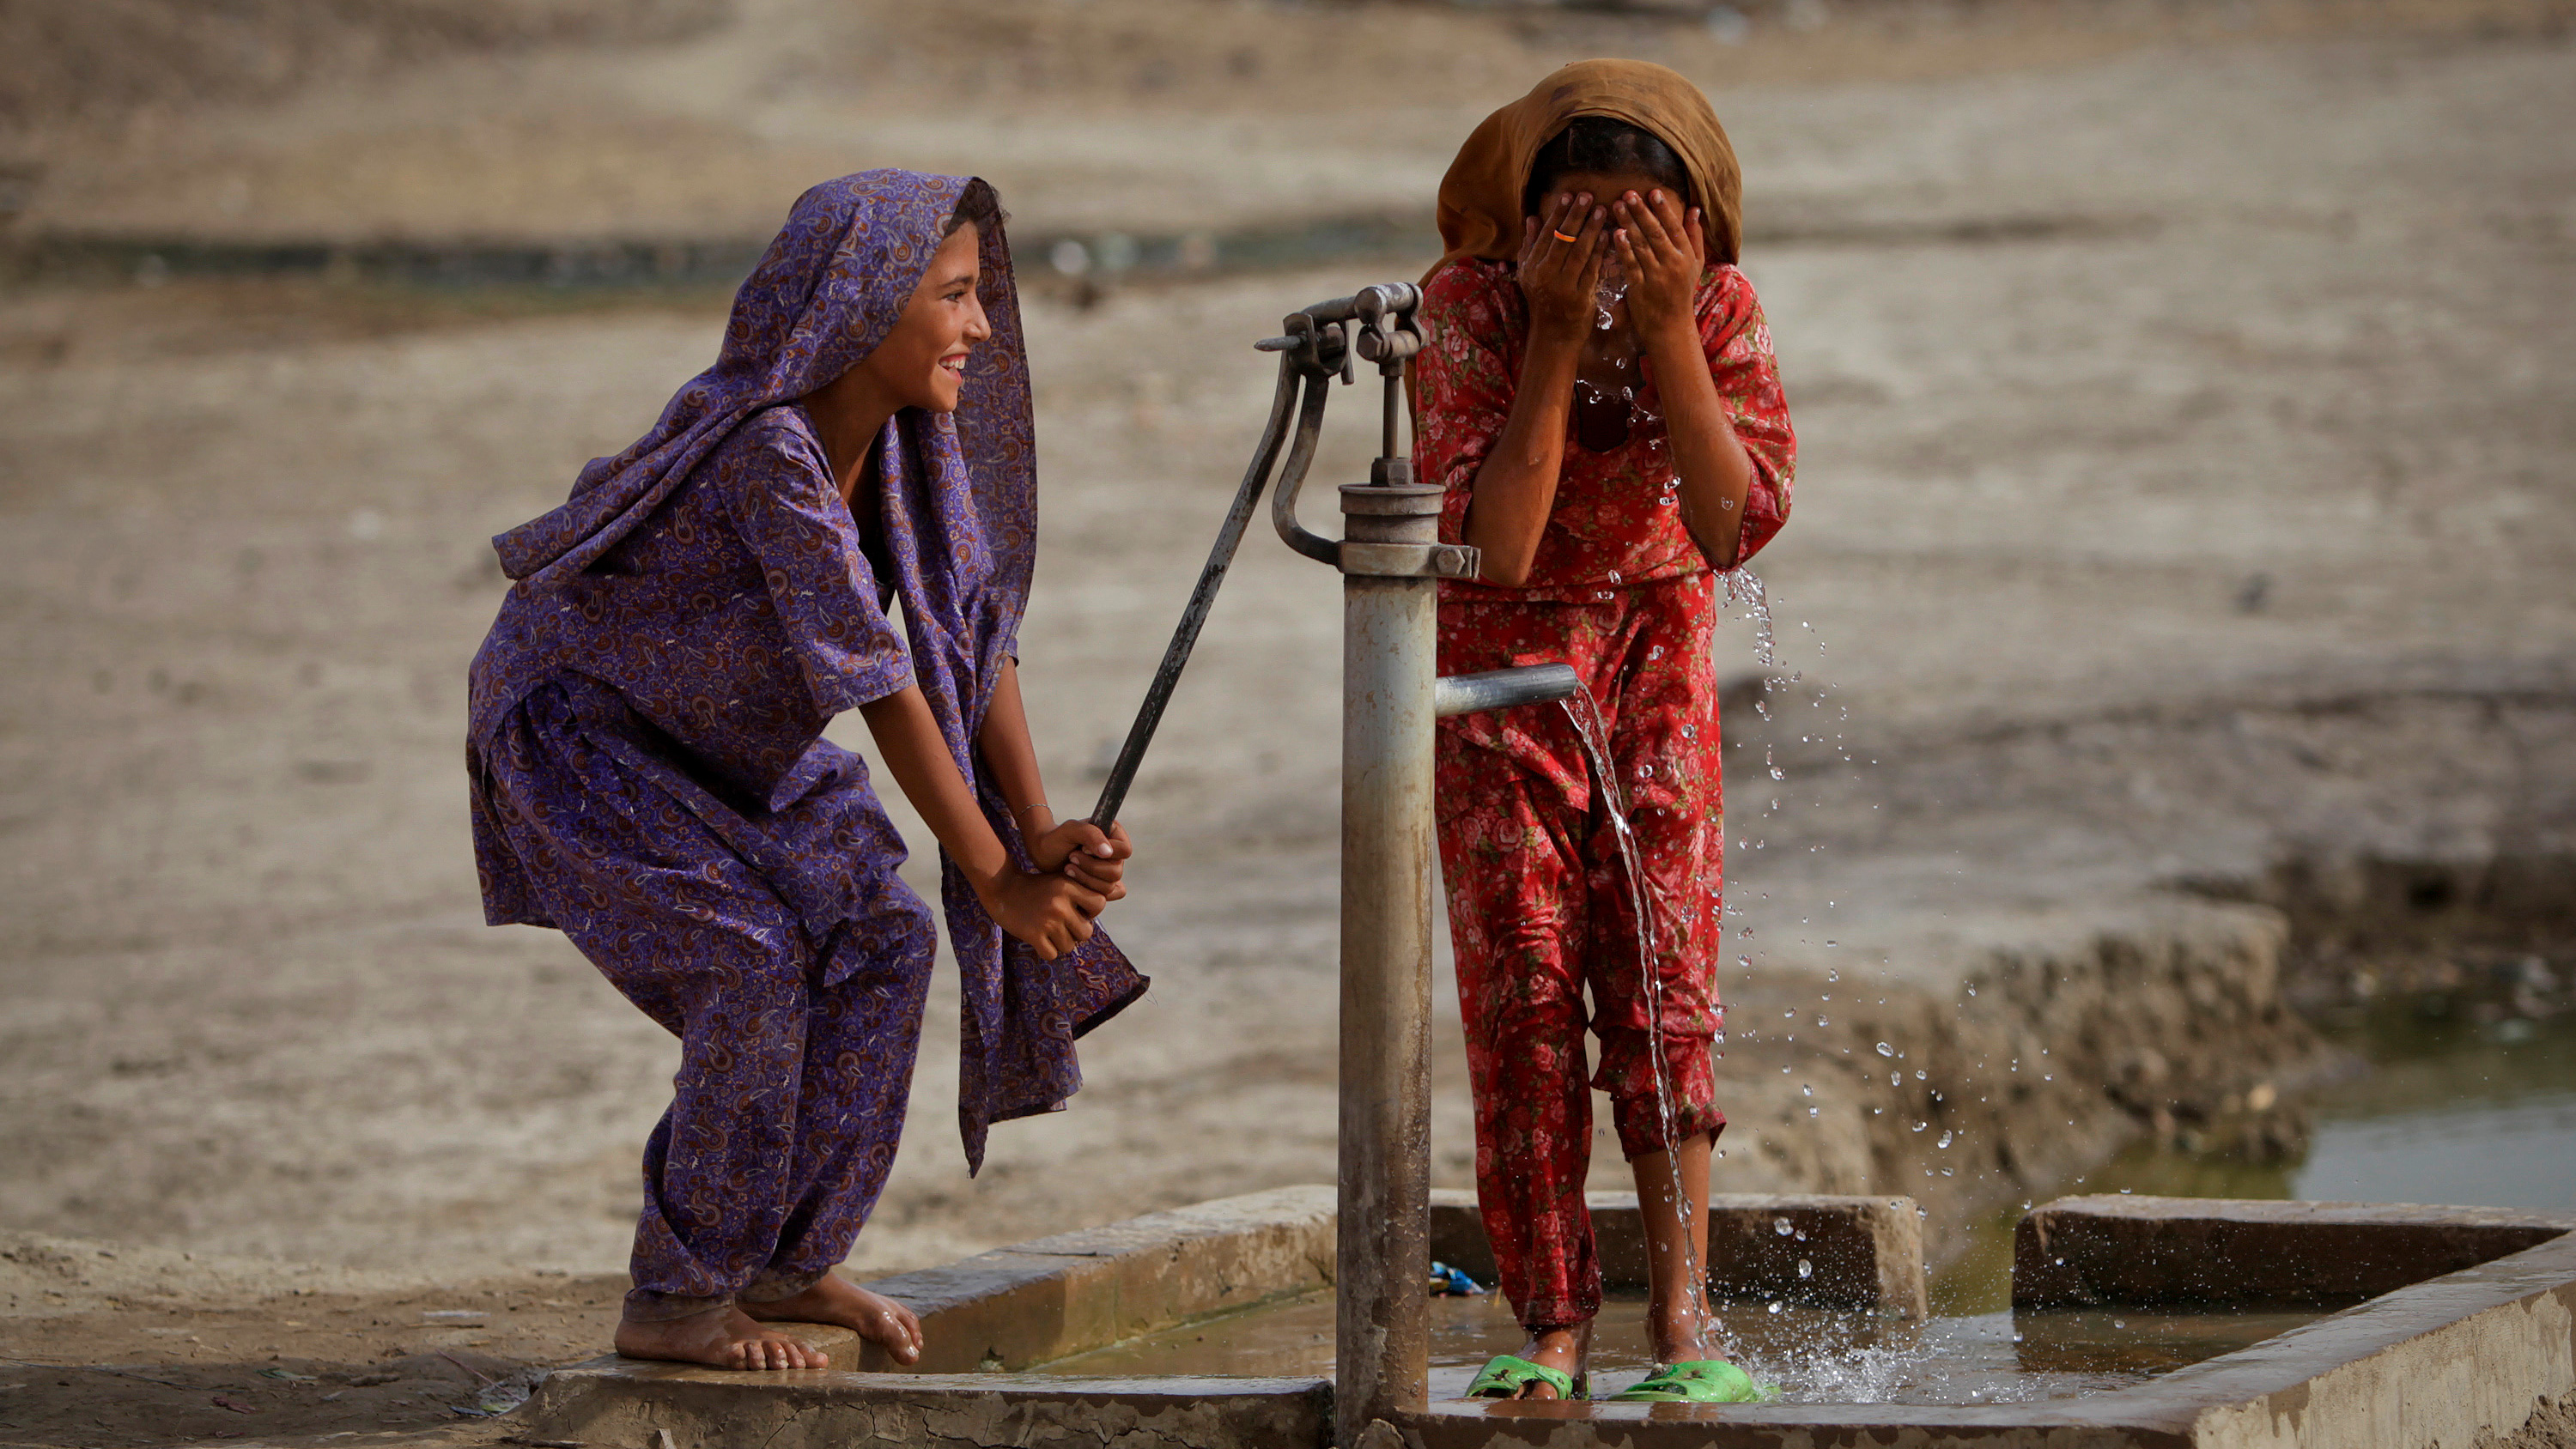 The picture shows two girls, one pumping, the other washing, and both laughing.